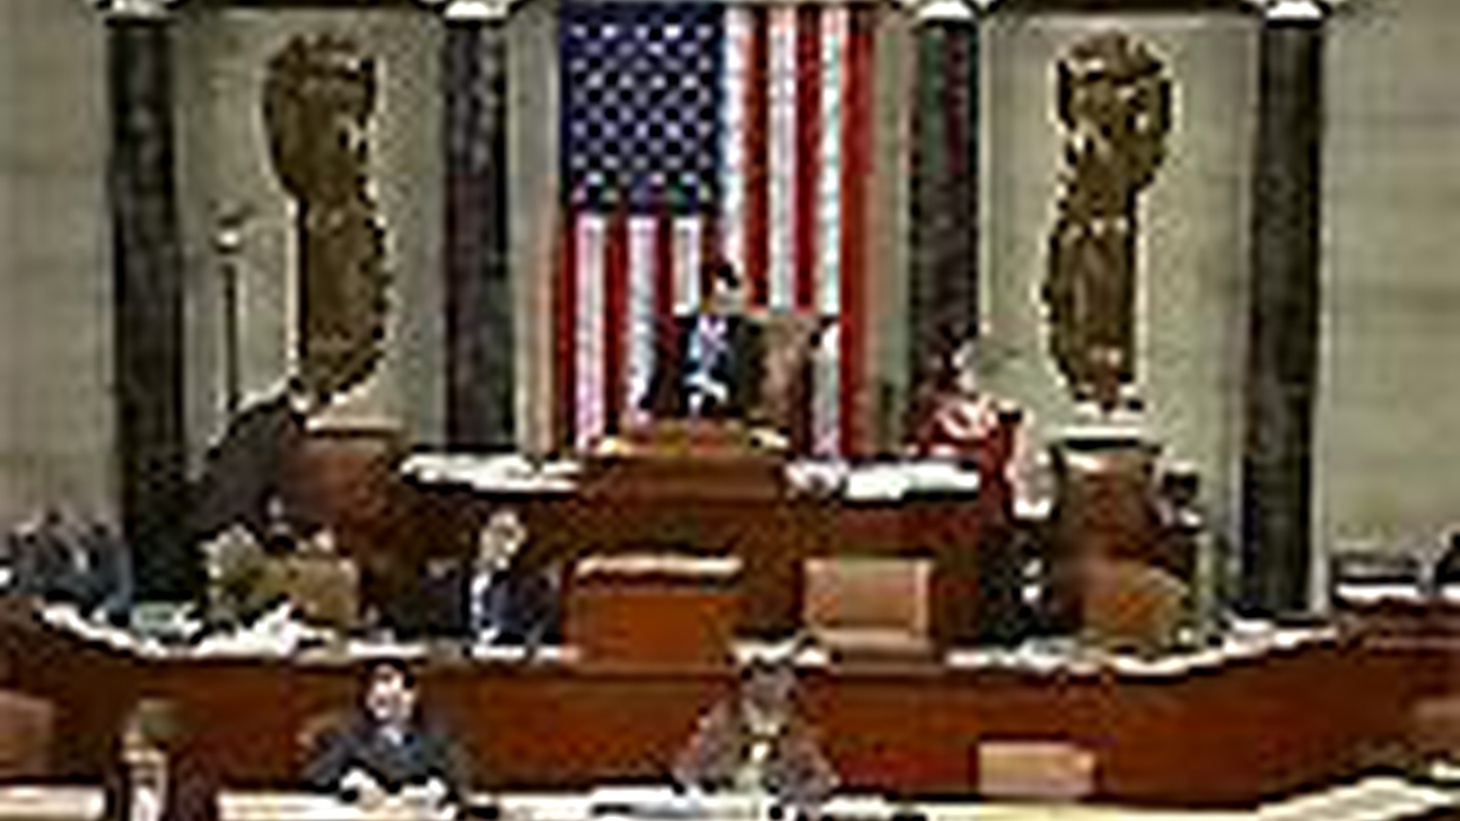 Congress has taken up where the Senate left off and has begun debate on the President's increase of troops in Iraq. By proposing only a non-binding resolution, the Democrats are getting heat from both the Left and the Right. How many Republicans will go along?  Does Congress have the power to cut off the money?  Plus, North Korea agrees to a phased shutdown of its nuclear program in exchange for aid and oil. On Reporter's Notebook, sea lions and dolphins may go on patrol against terrorist swimmers and divers.